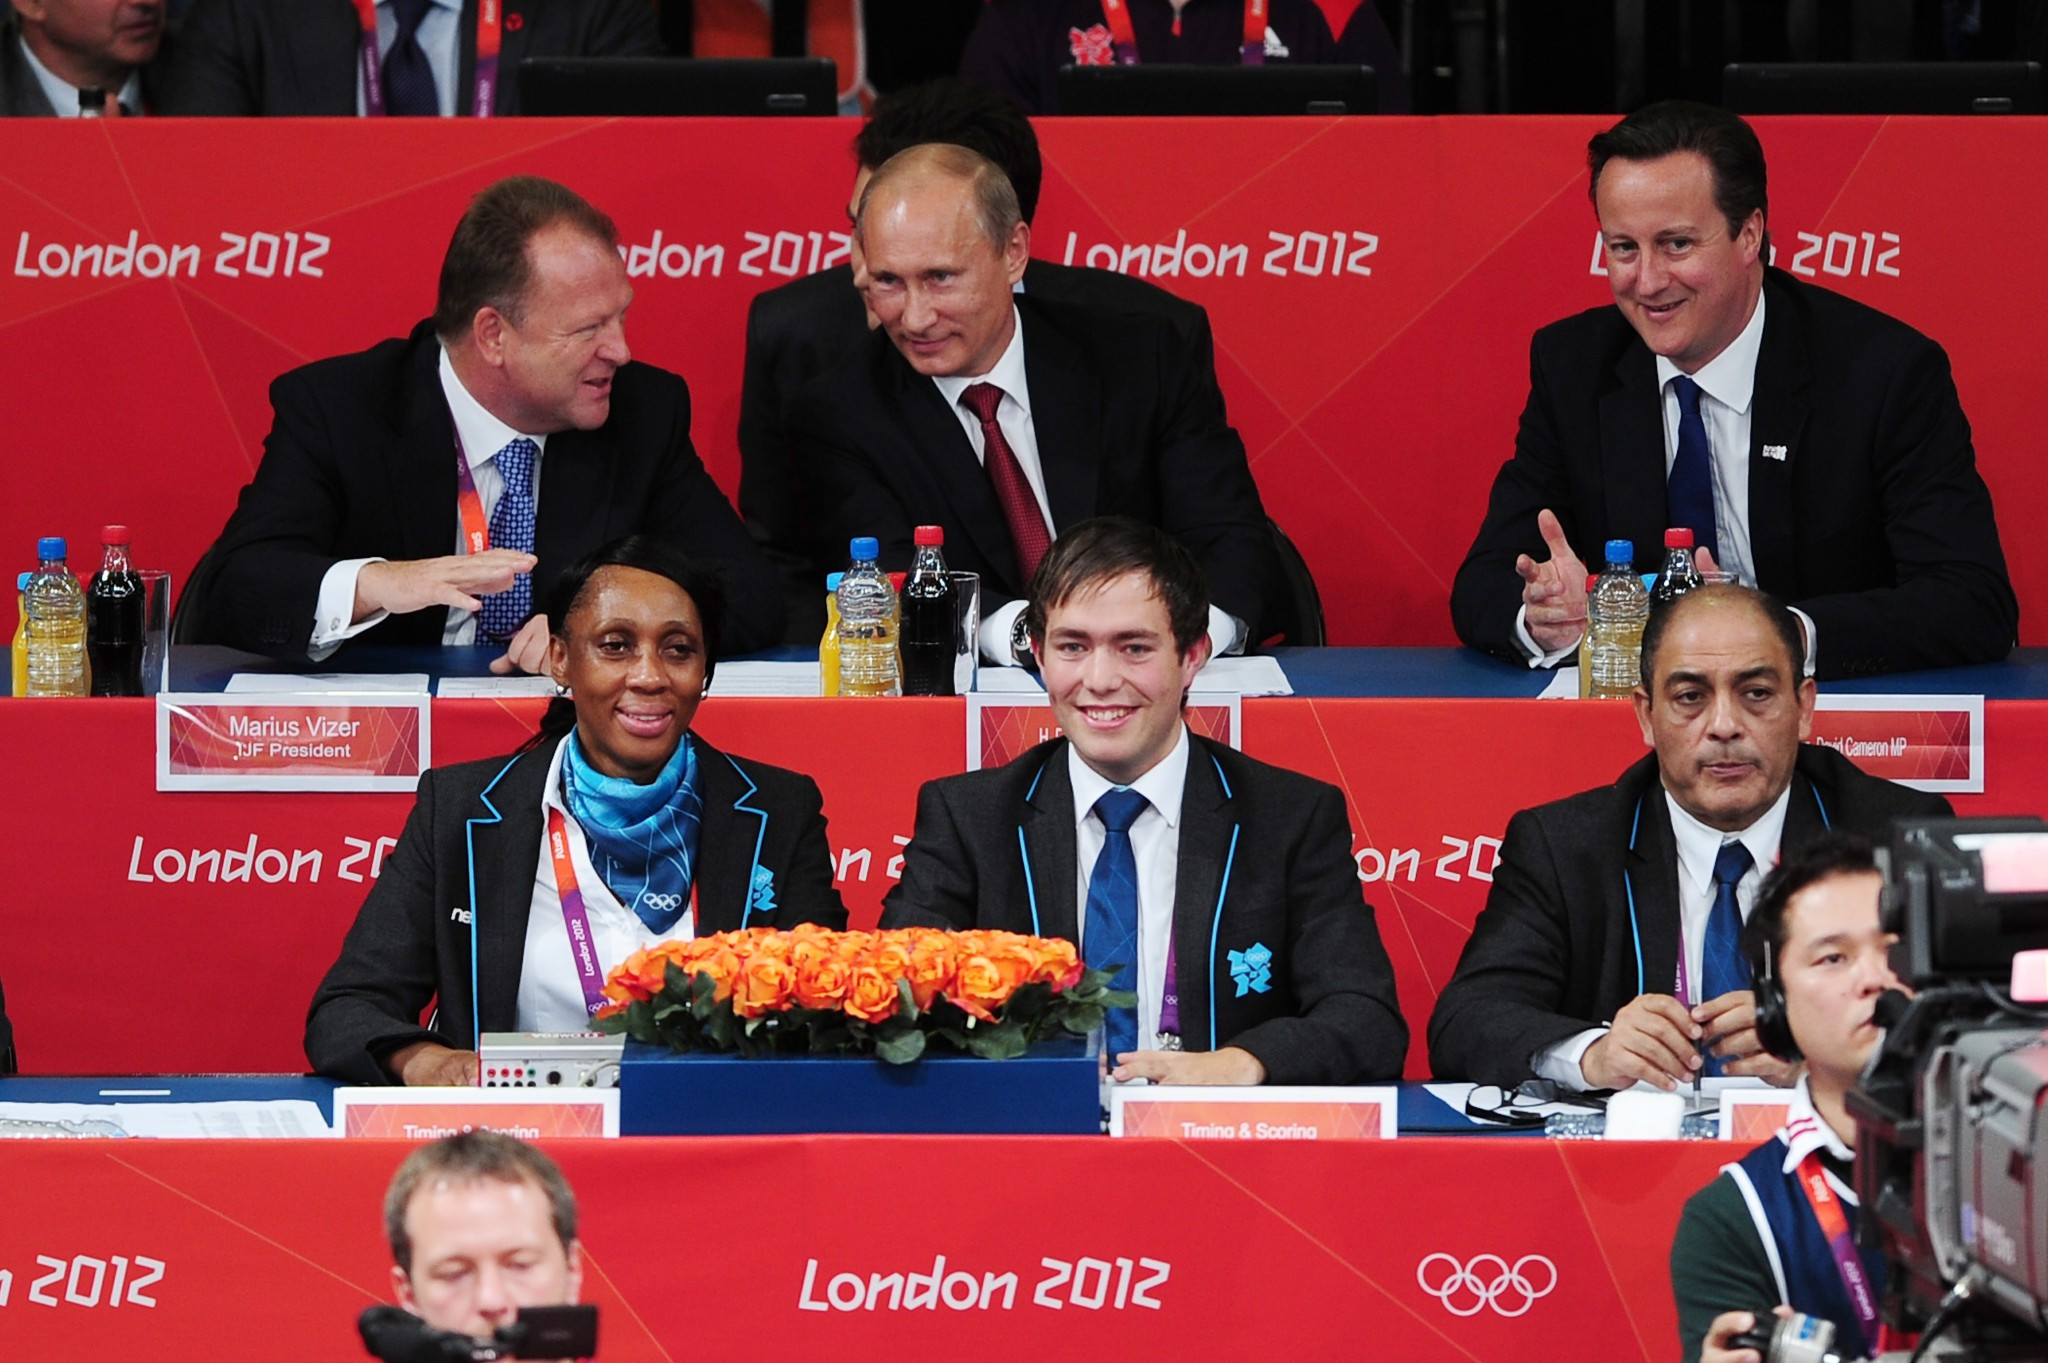 Vladimir Putin, centre, attended the judo at London 2012 along with then British Prime Minister David Cameron, right, and Marius Vizer, left, President of the IJF ©Getty Images